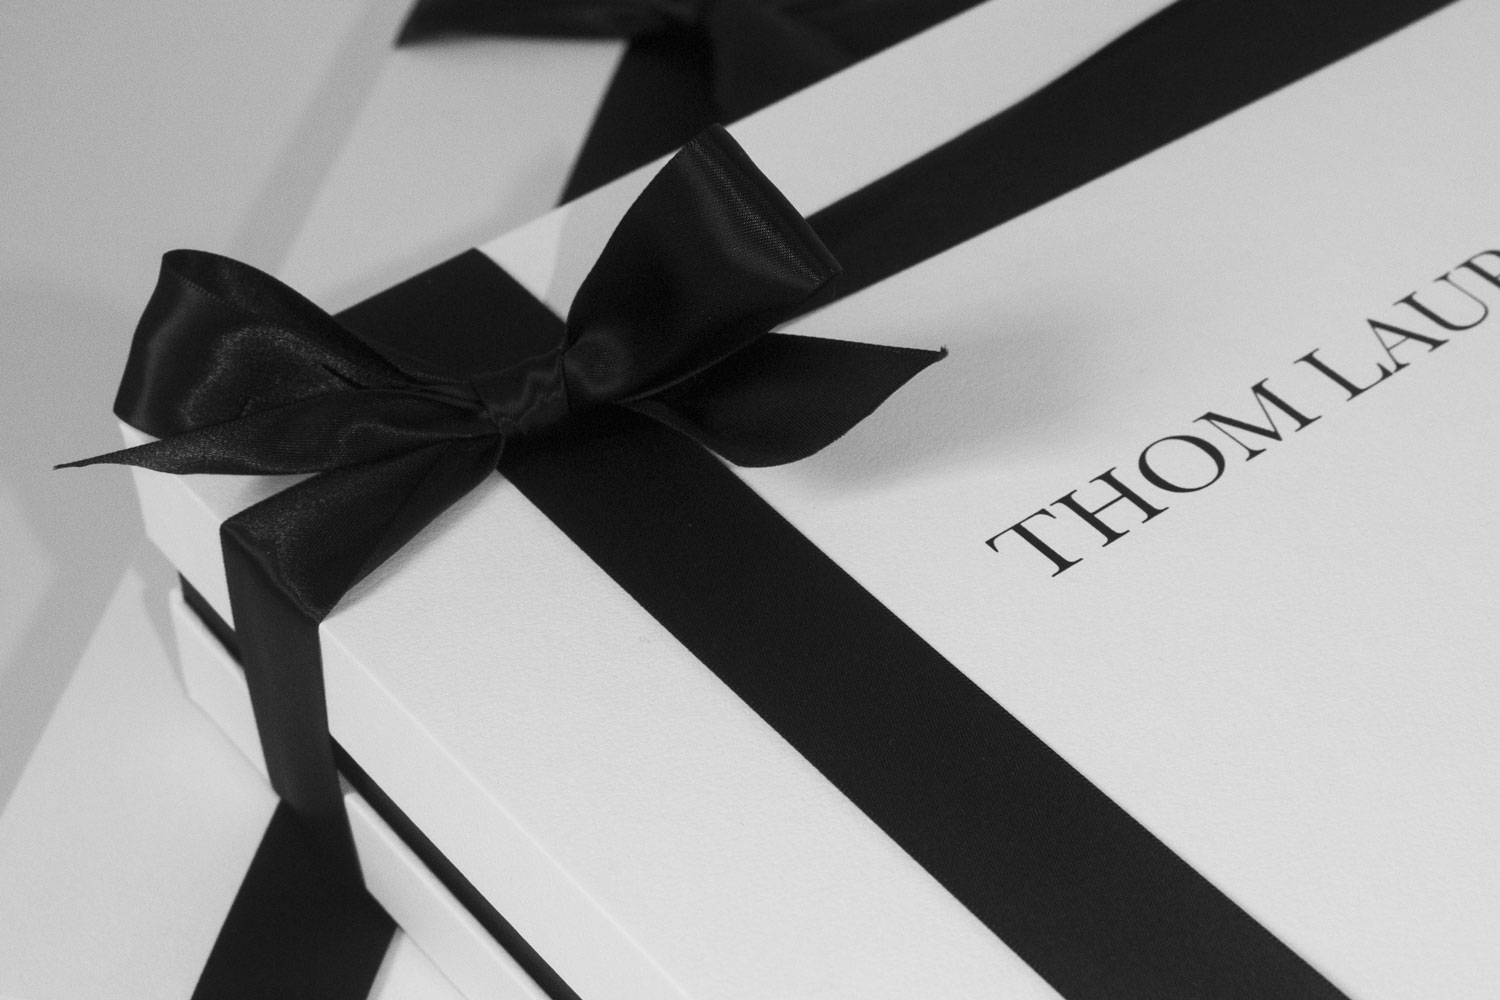 Progress Packaging Thom Laurence Bespoke Luxury Colorplan Embossed Blackfoil Box Manufacture Production Print Ribbon 04